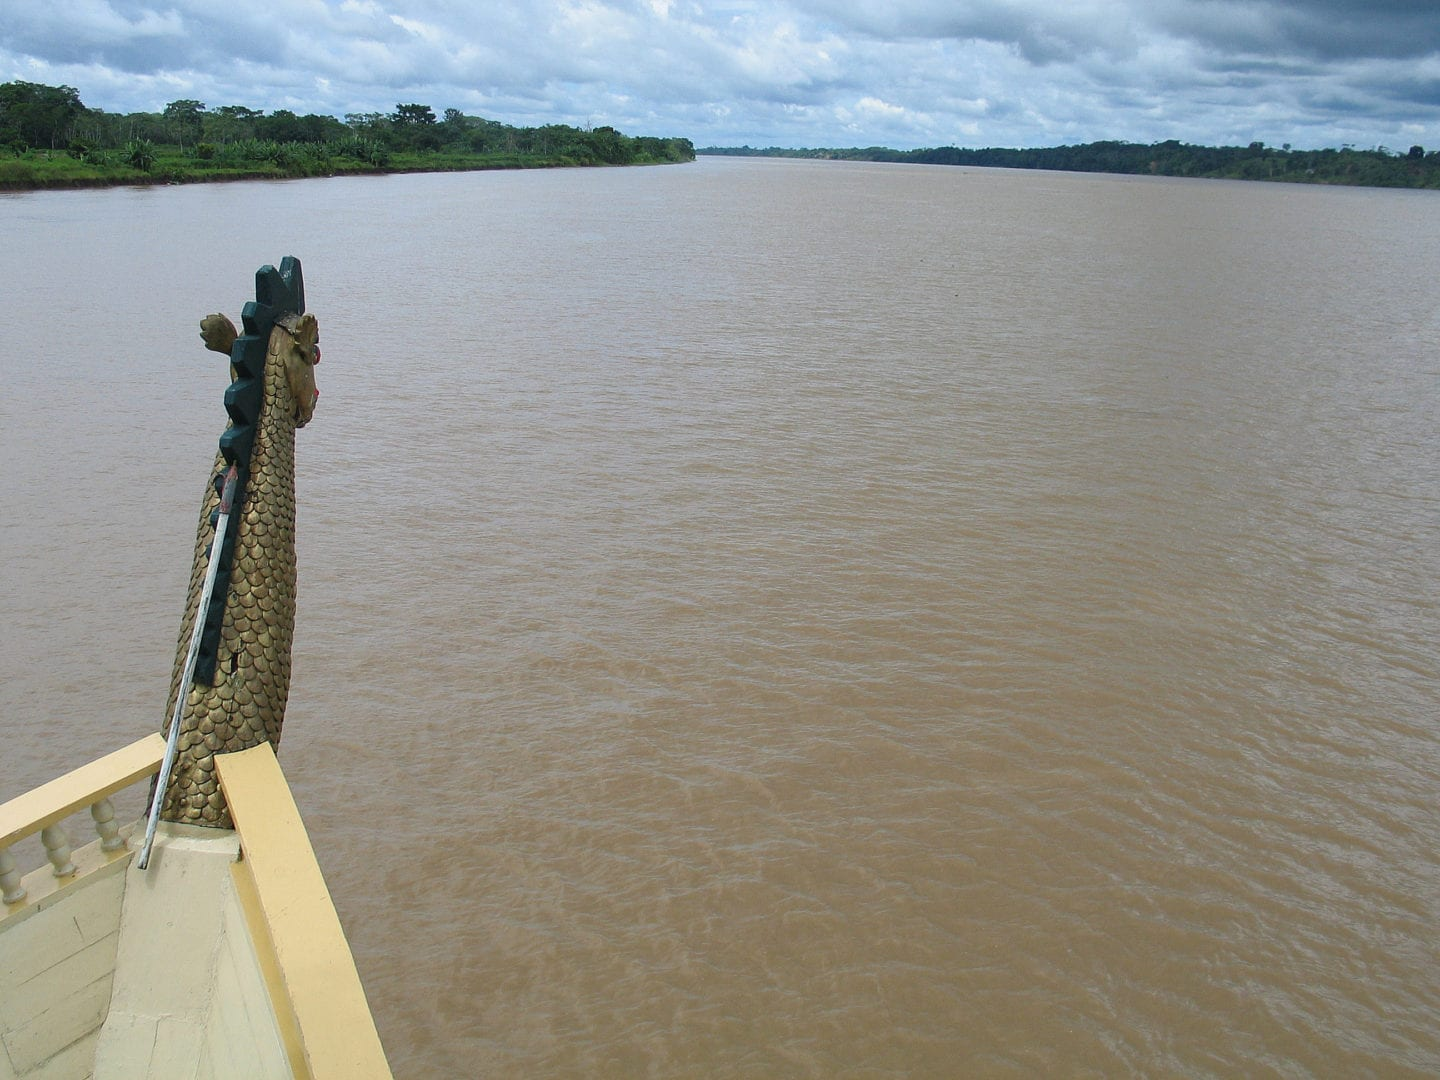 Sailing the Amazon Rainforest on a boat